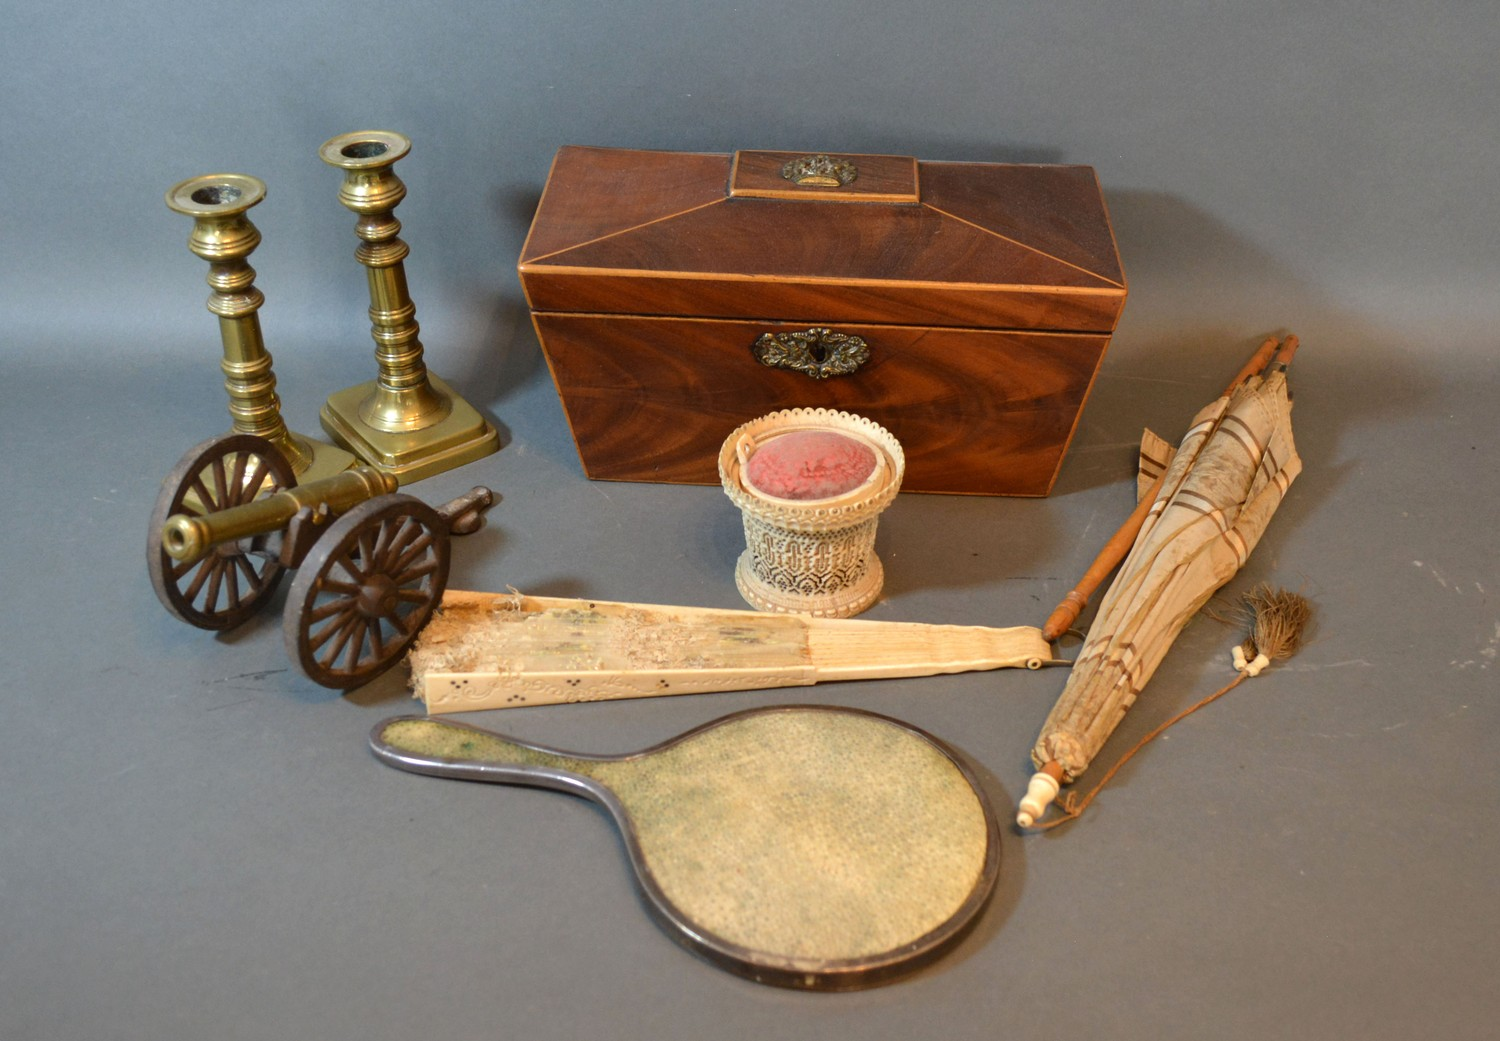 A 19th century mahogany tea caddy together with a 19th century fan and other items